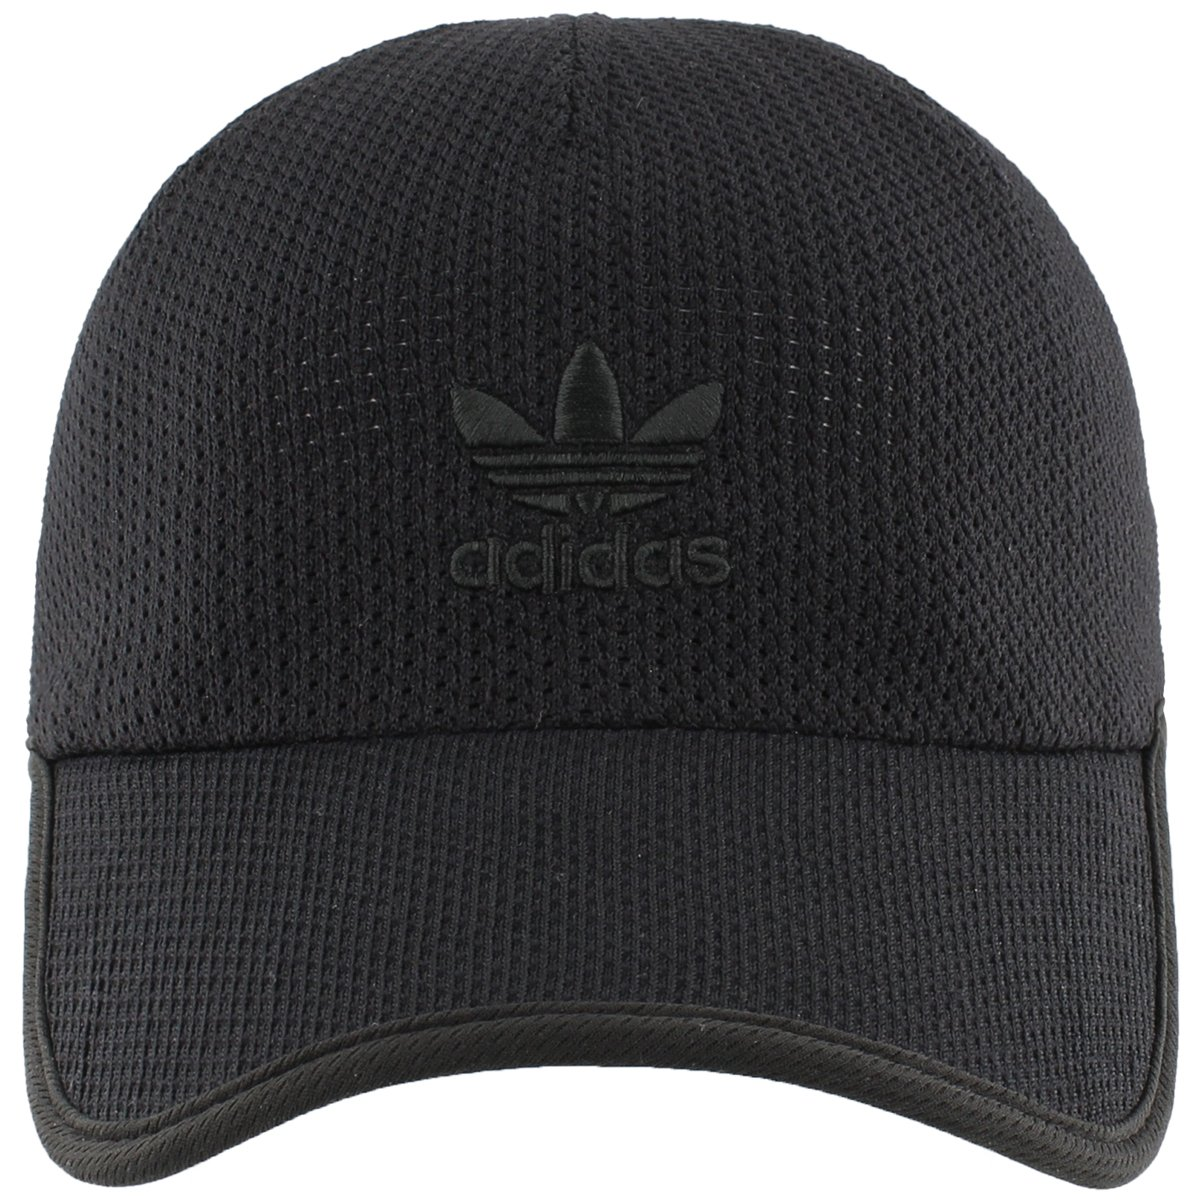 32c1c154ce54d Amazon.com  adidas Men s Originals Primeknit Relaxed Strapback Cap ...